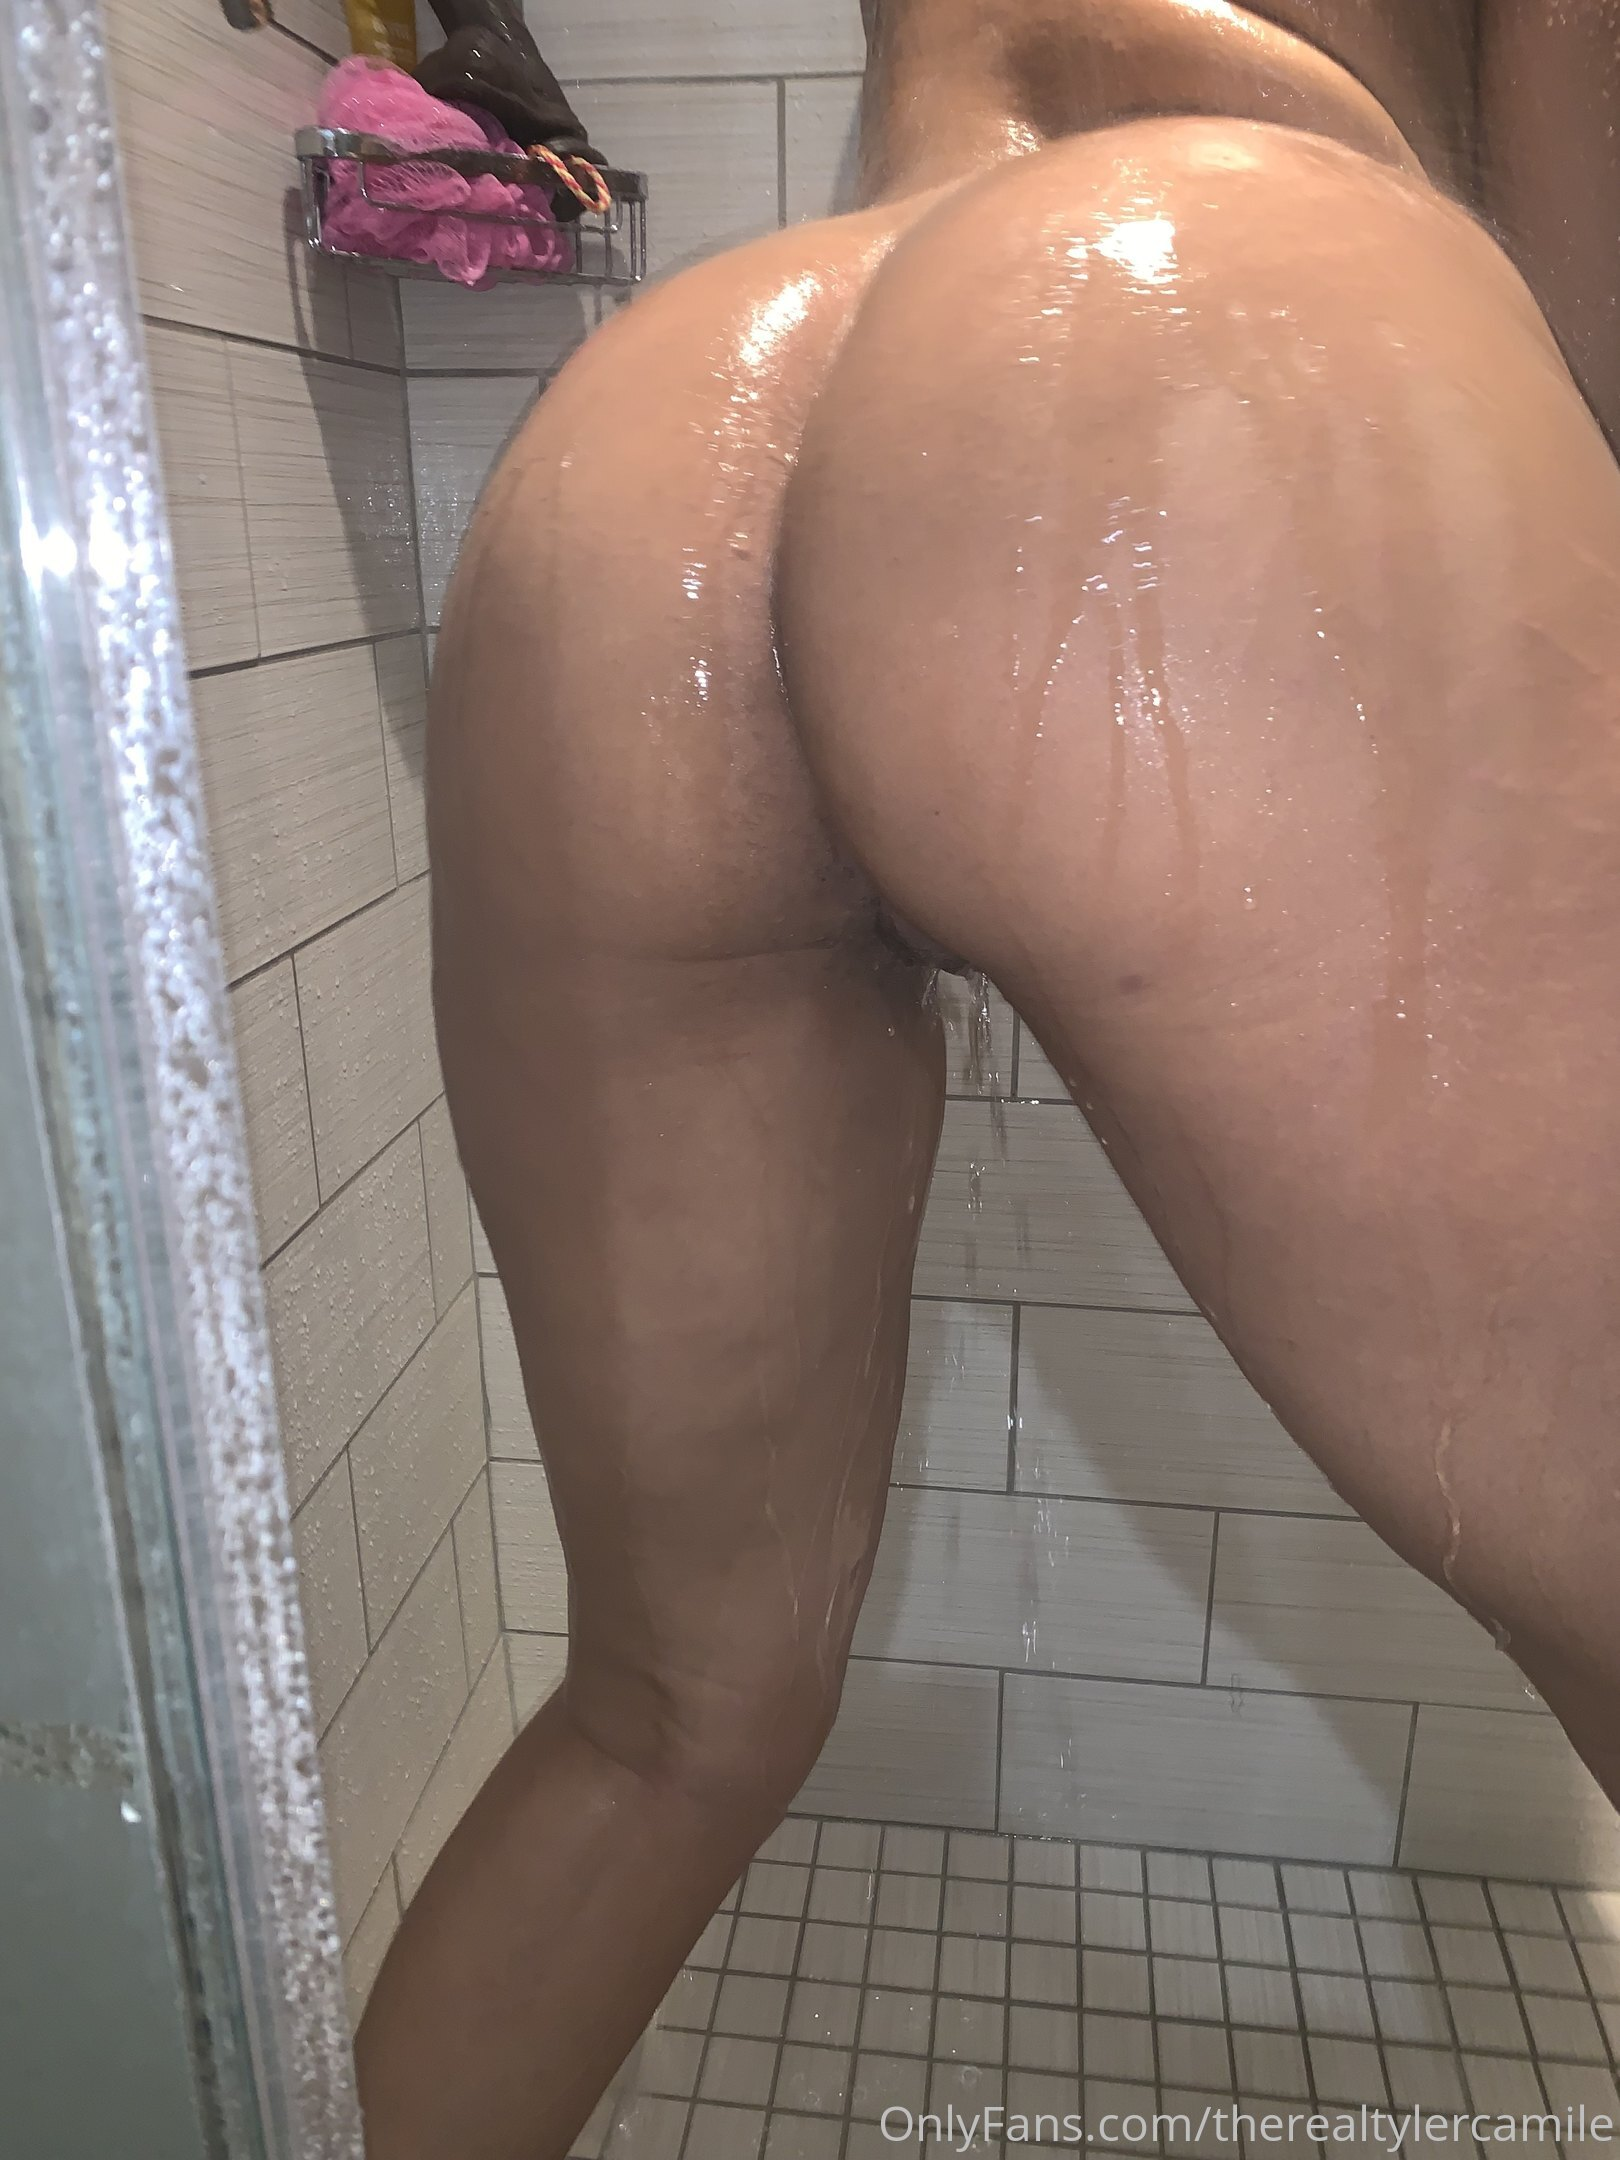 Onlyfans, Tyler Camille 0021